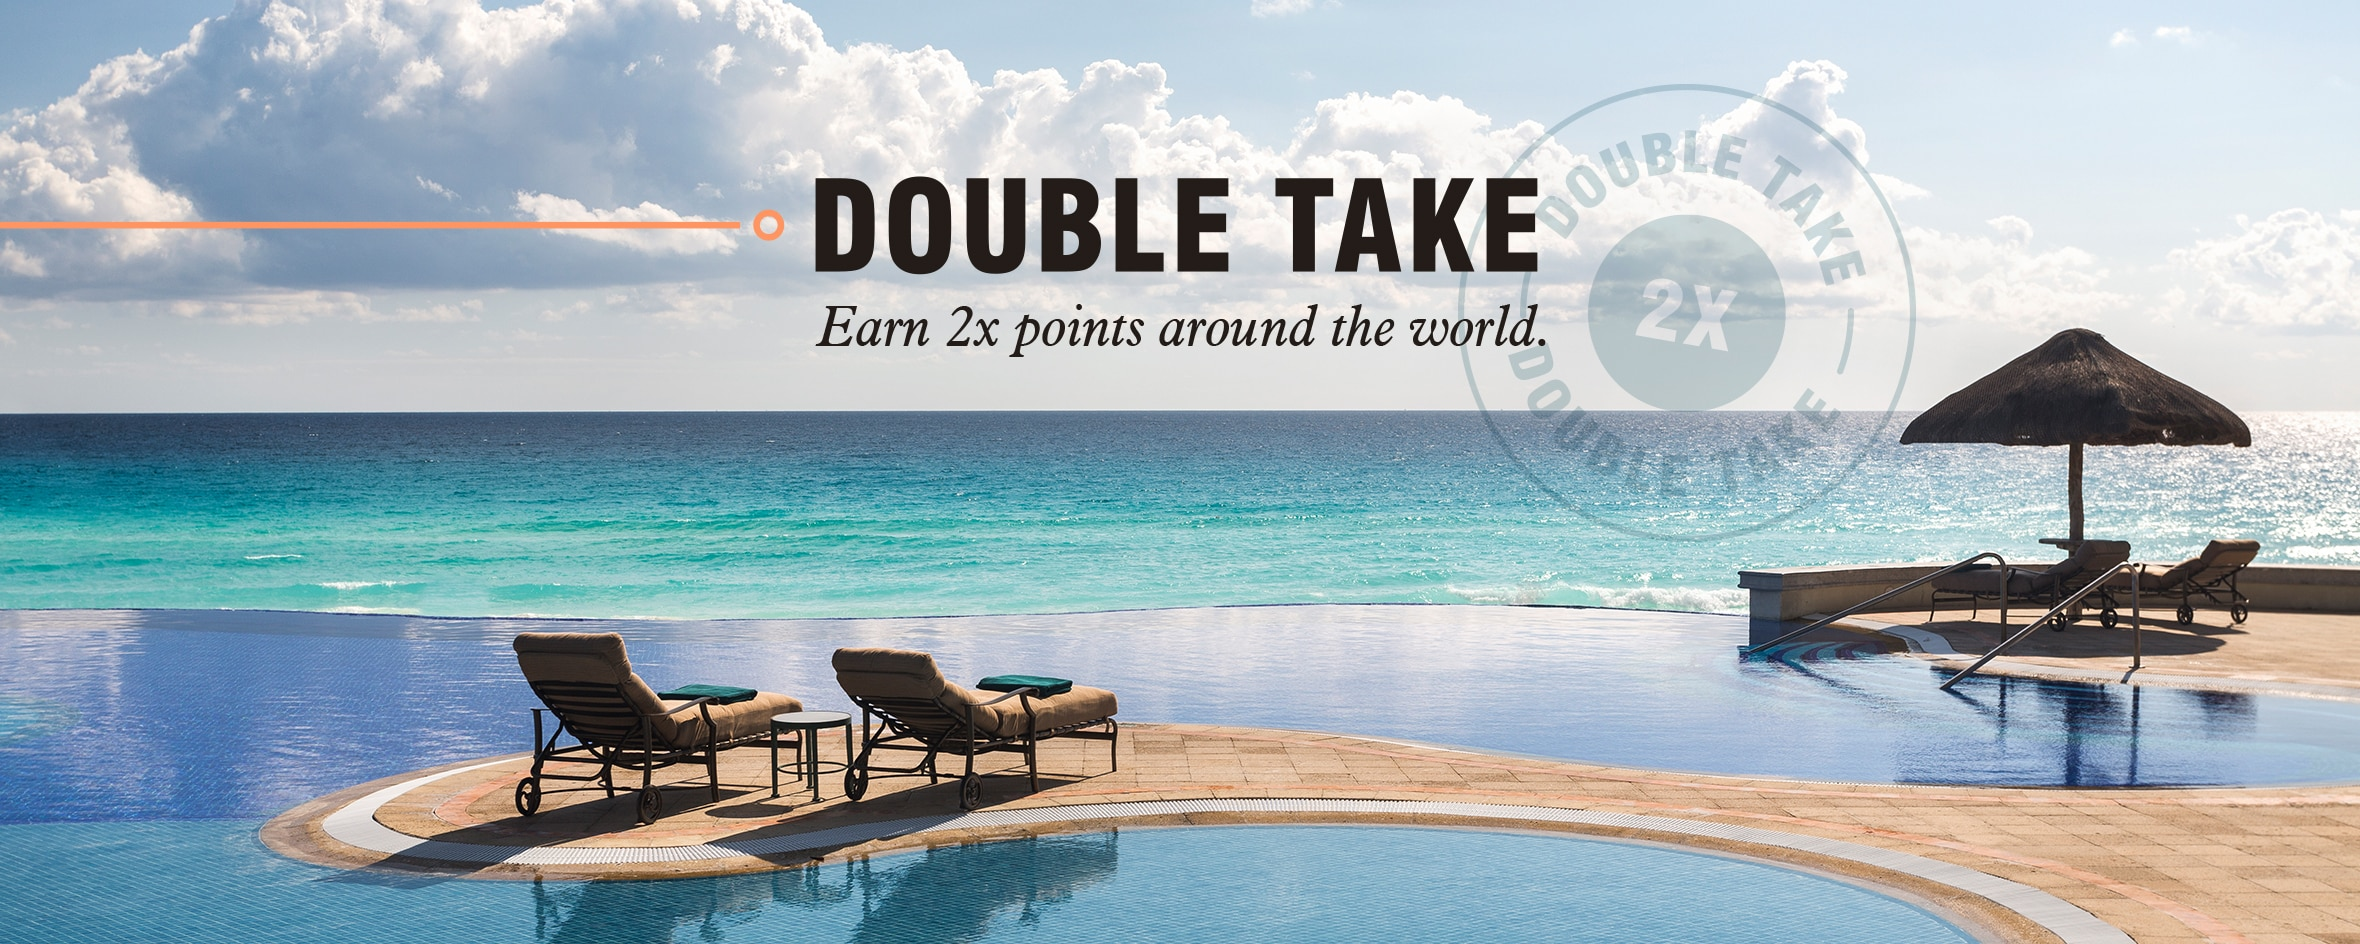 Double Take. Earn 2x points around the world.